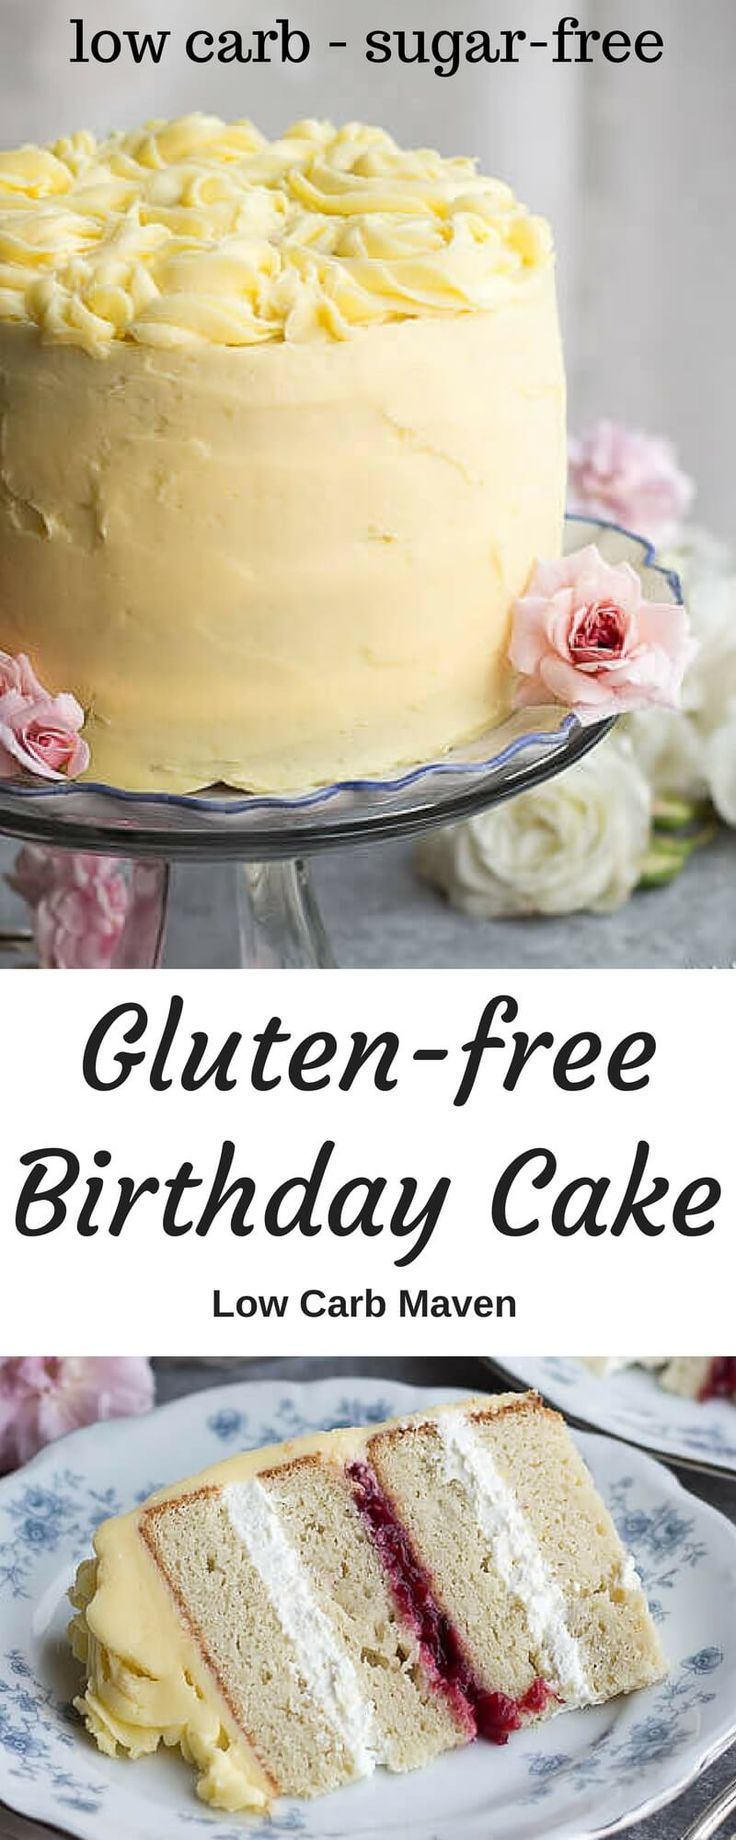 A pretty glutenfree birthday cake recipe with moist low carb cake